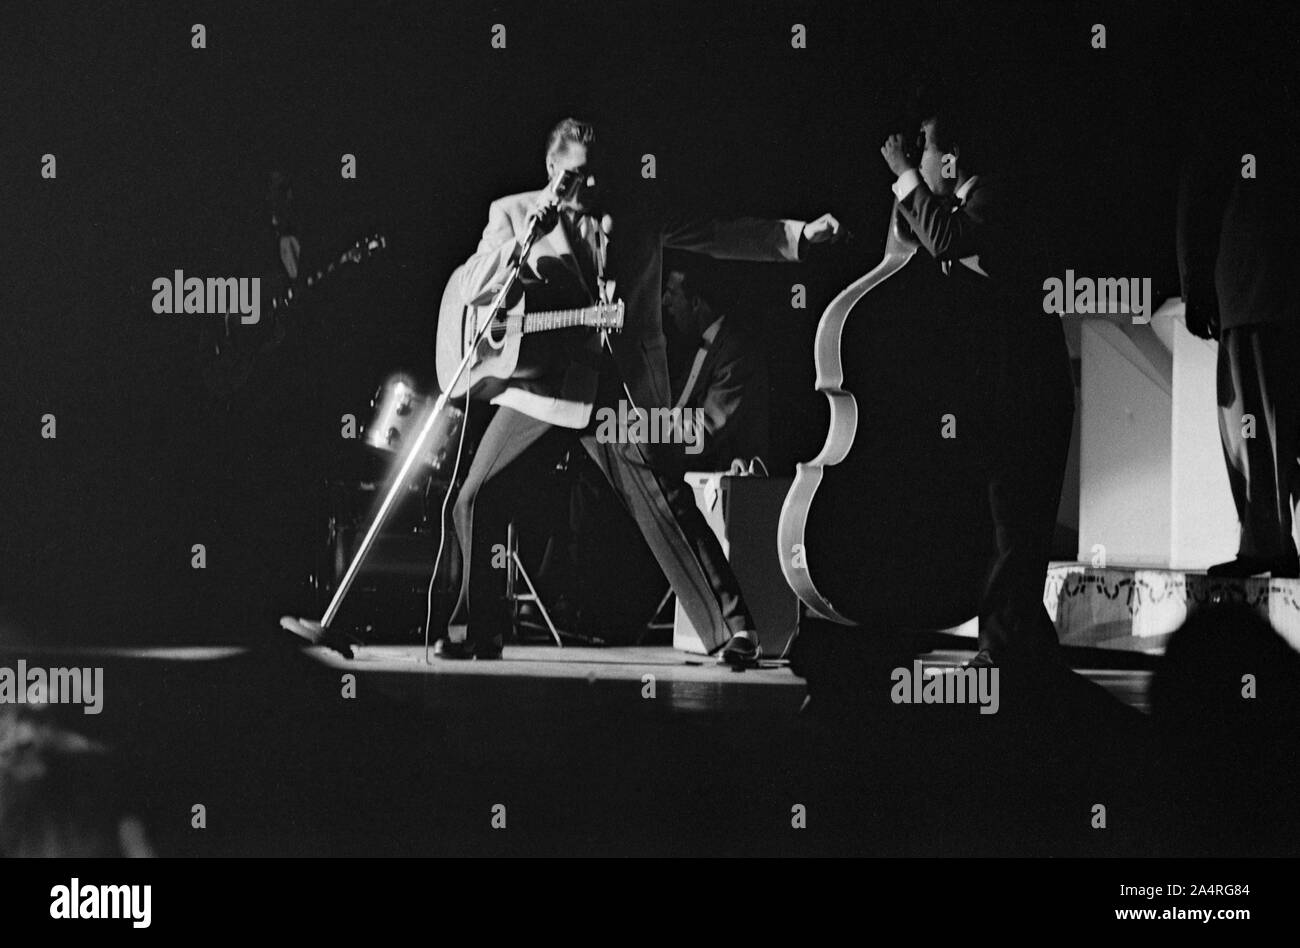 Elvis Presley in concert at the Fox Theater, Detroit, Michigan, May 25, 1956. Stock Photo